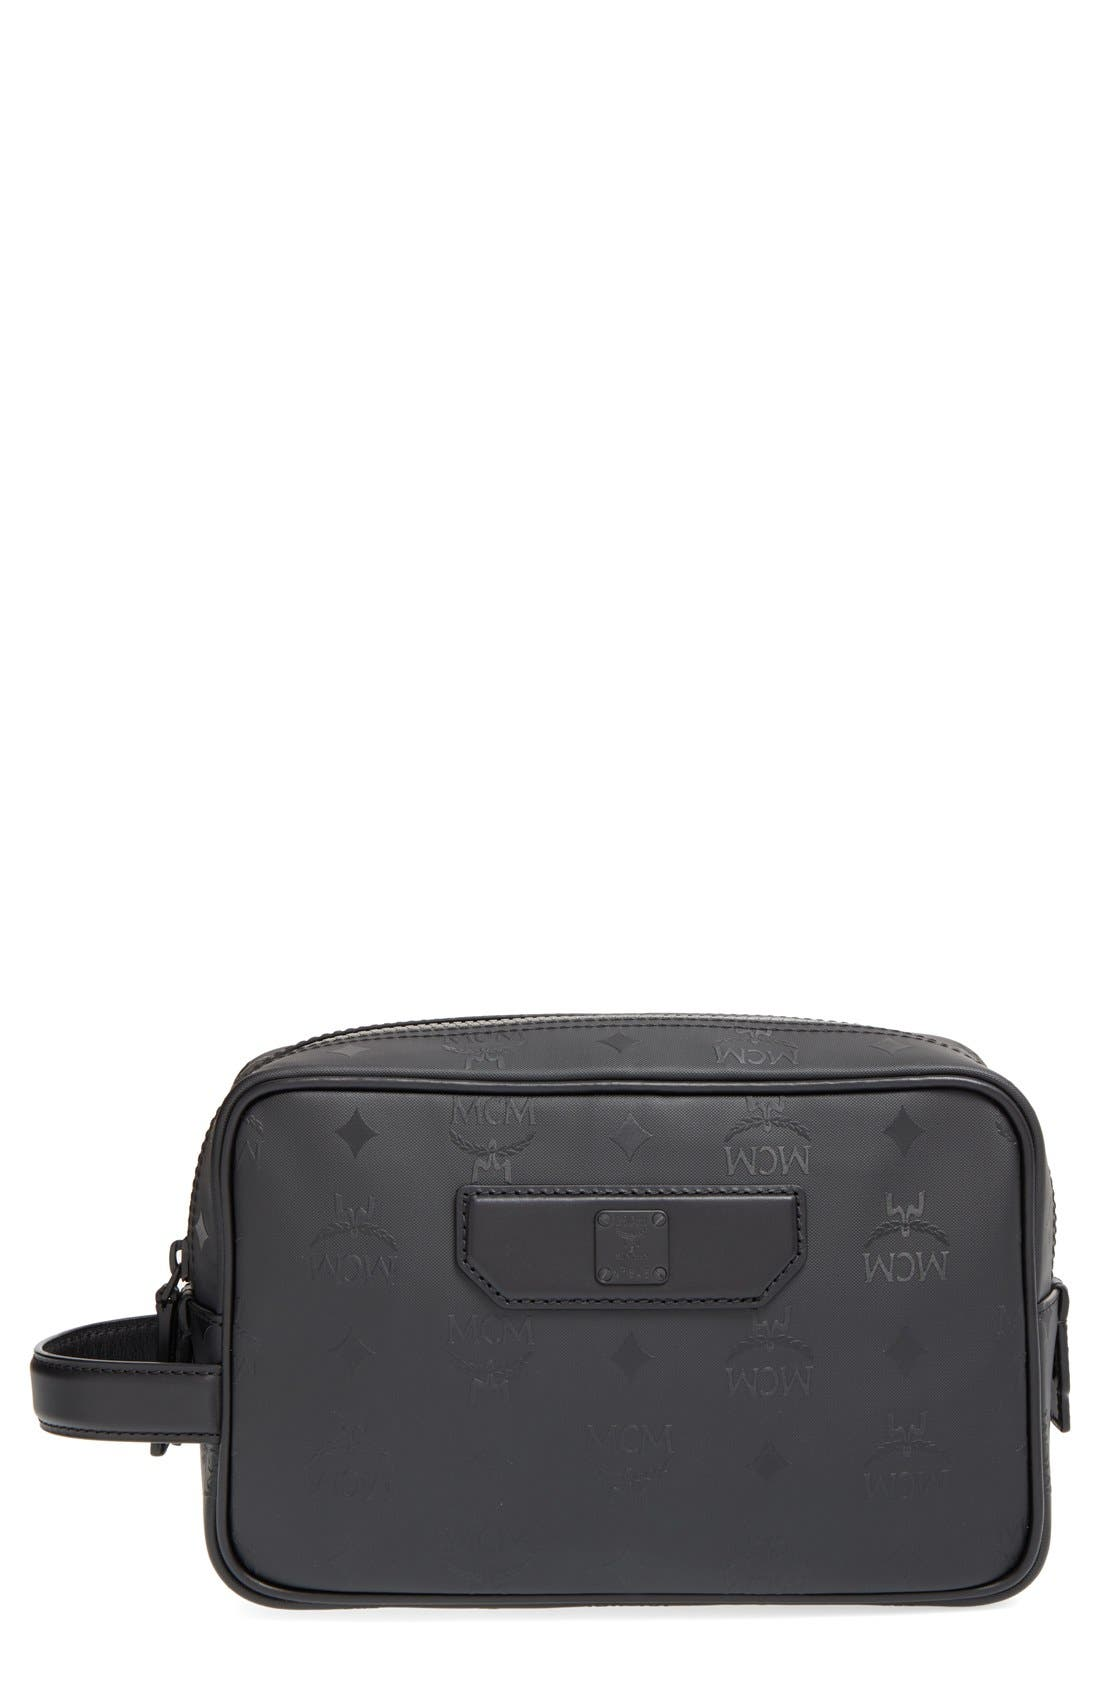 'Nomad' Travel Case,                         Main,                         color, 001